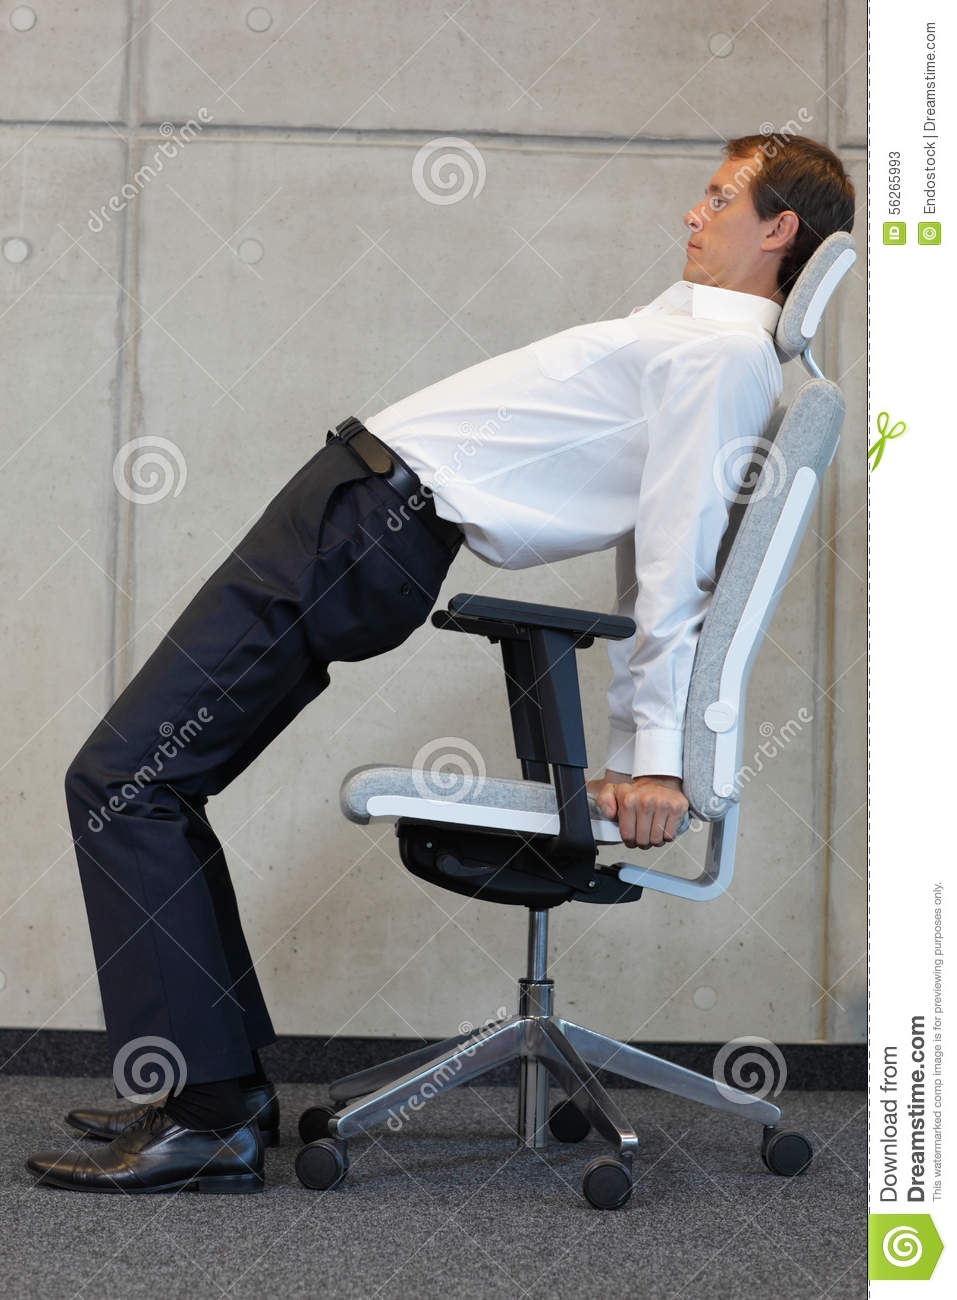 yoga on chair in office - business man exercising stock photo